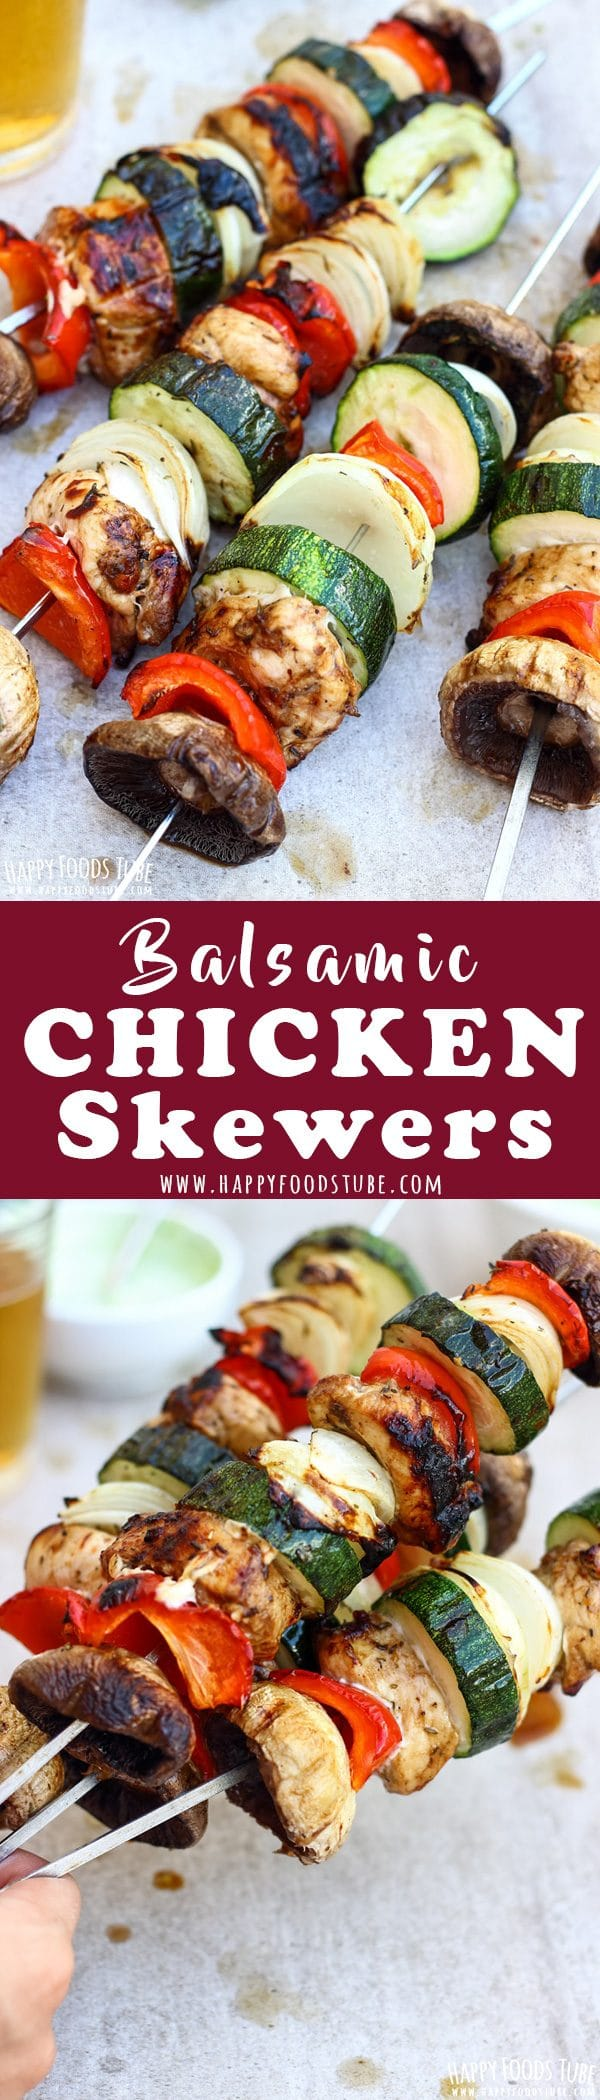 Balsamic Chicken Skewers Recipe Collage